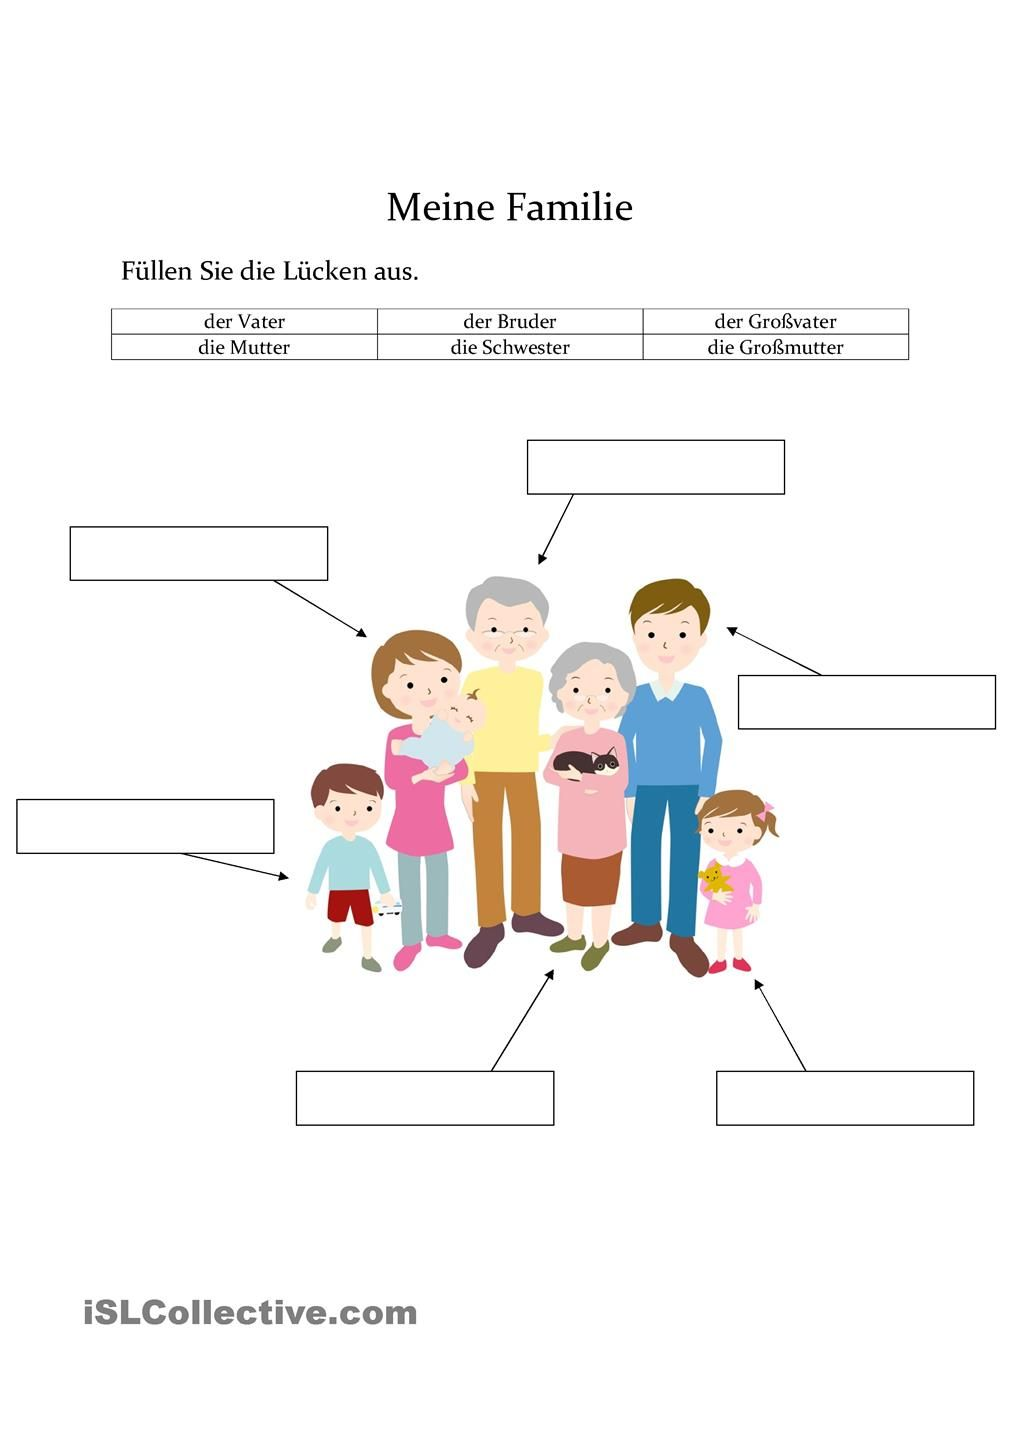 Meine Familie | DİLLER | Pinterest | German, German language and ...